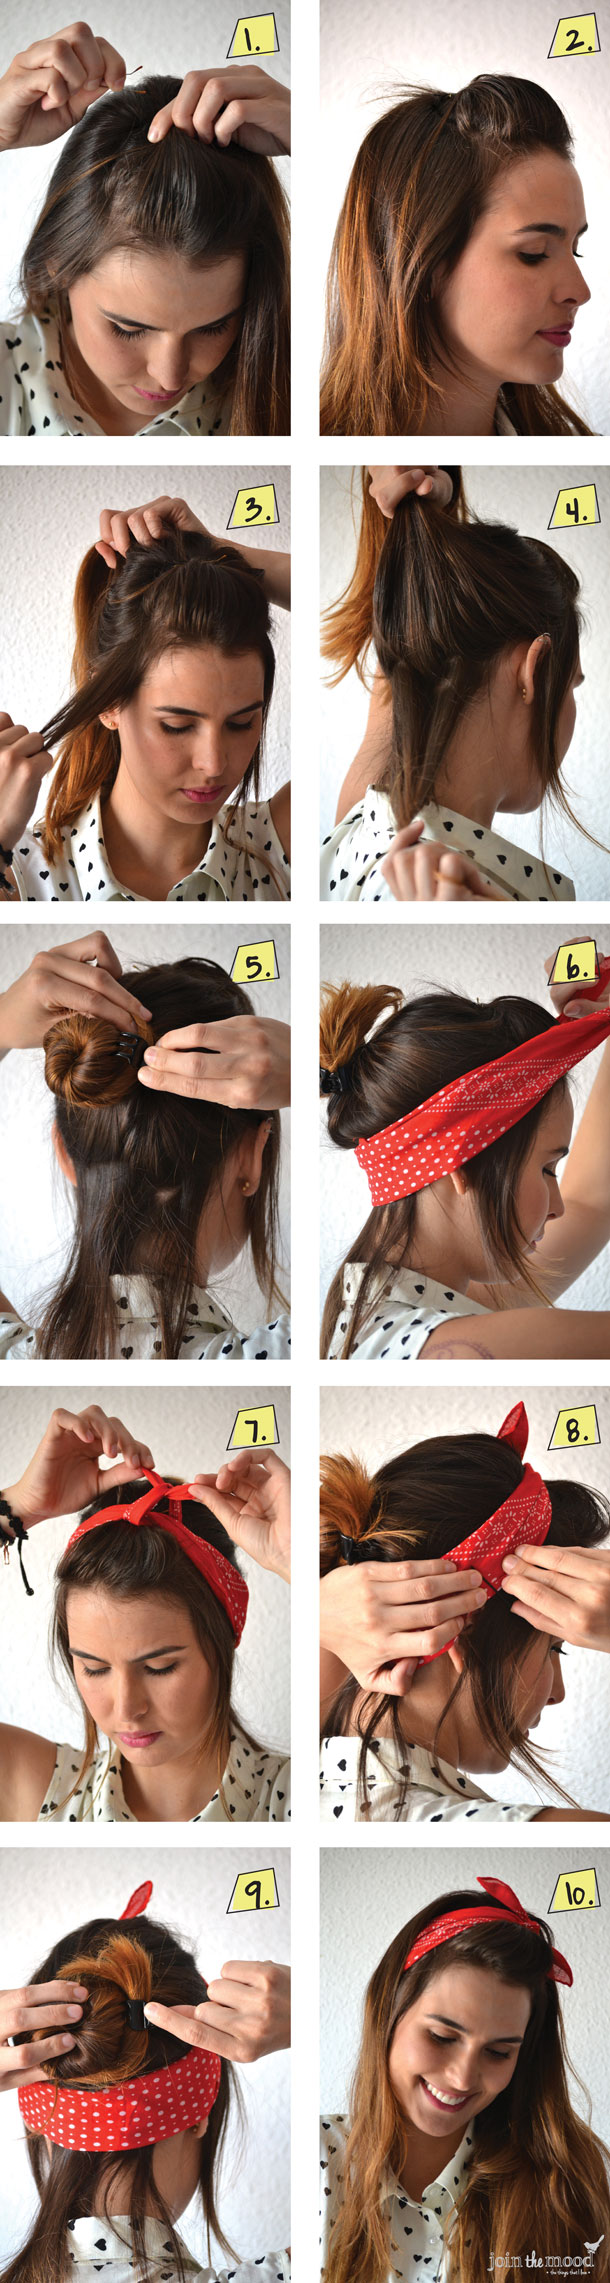 Hair with a Red Bandana